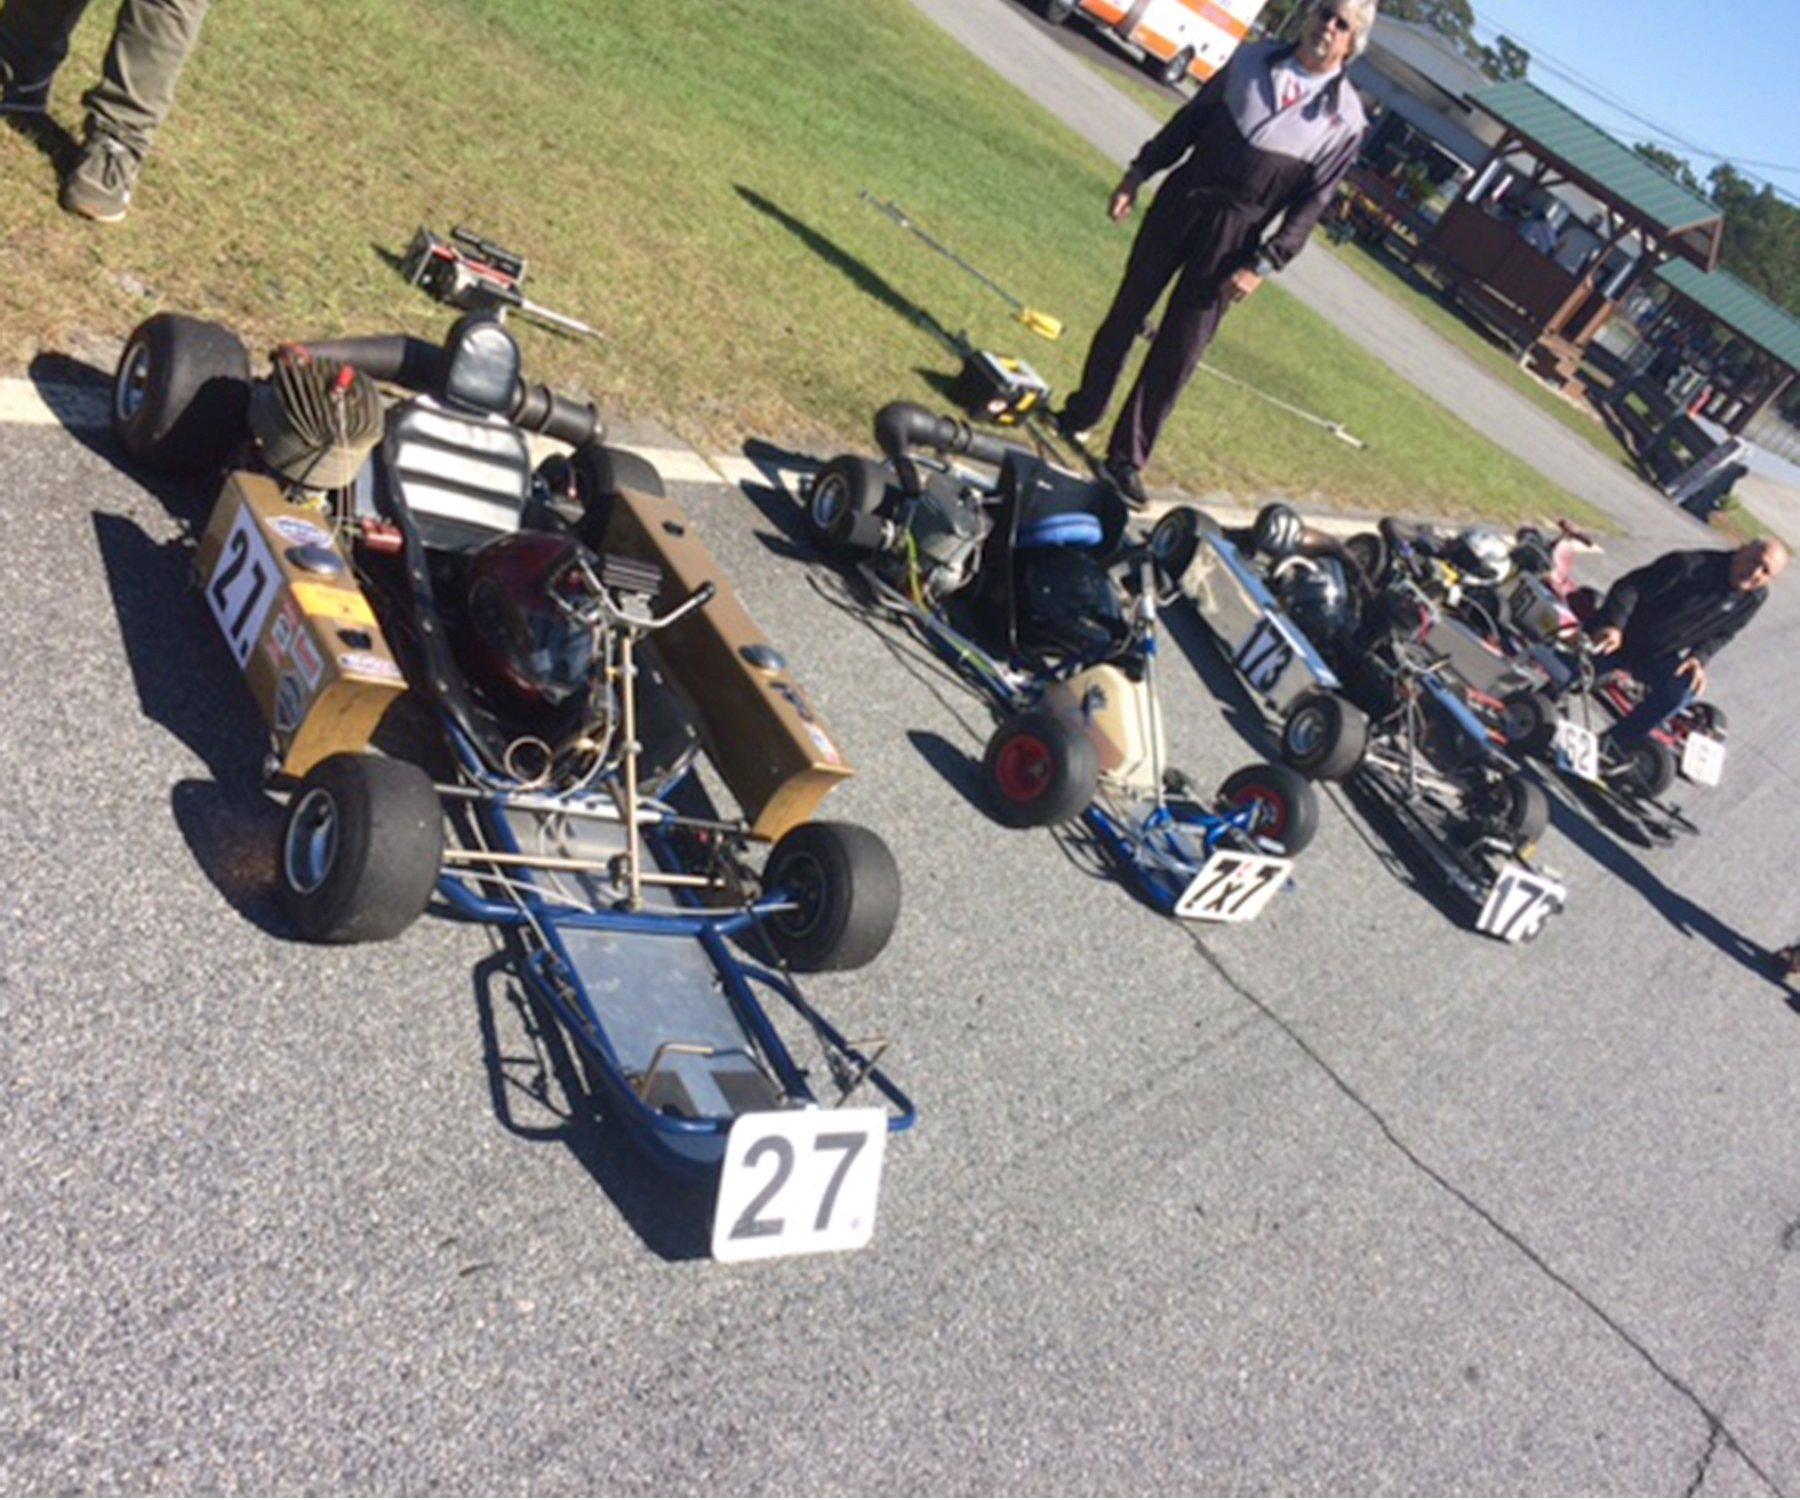 On the grid – Terry Armstong's Quicksilver powered by a 135cc Dap T62 reed sits besides the number 7x7 sit-up sprinter.